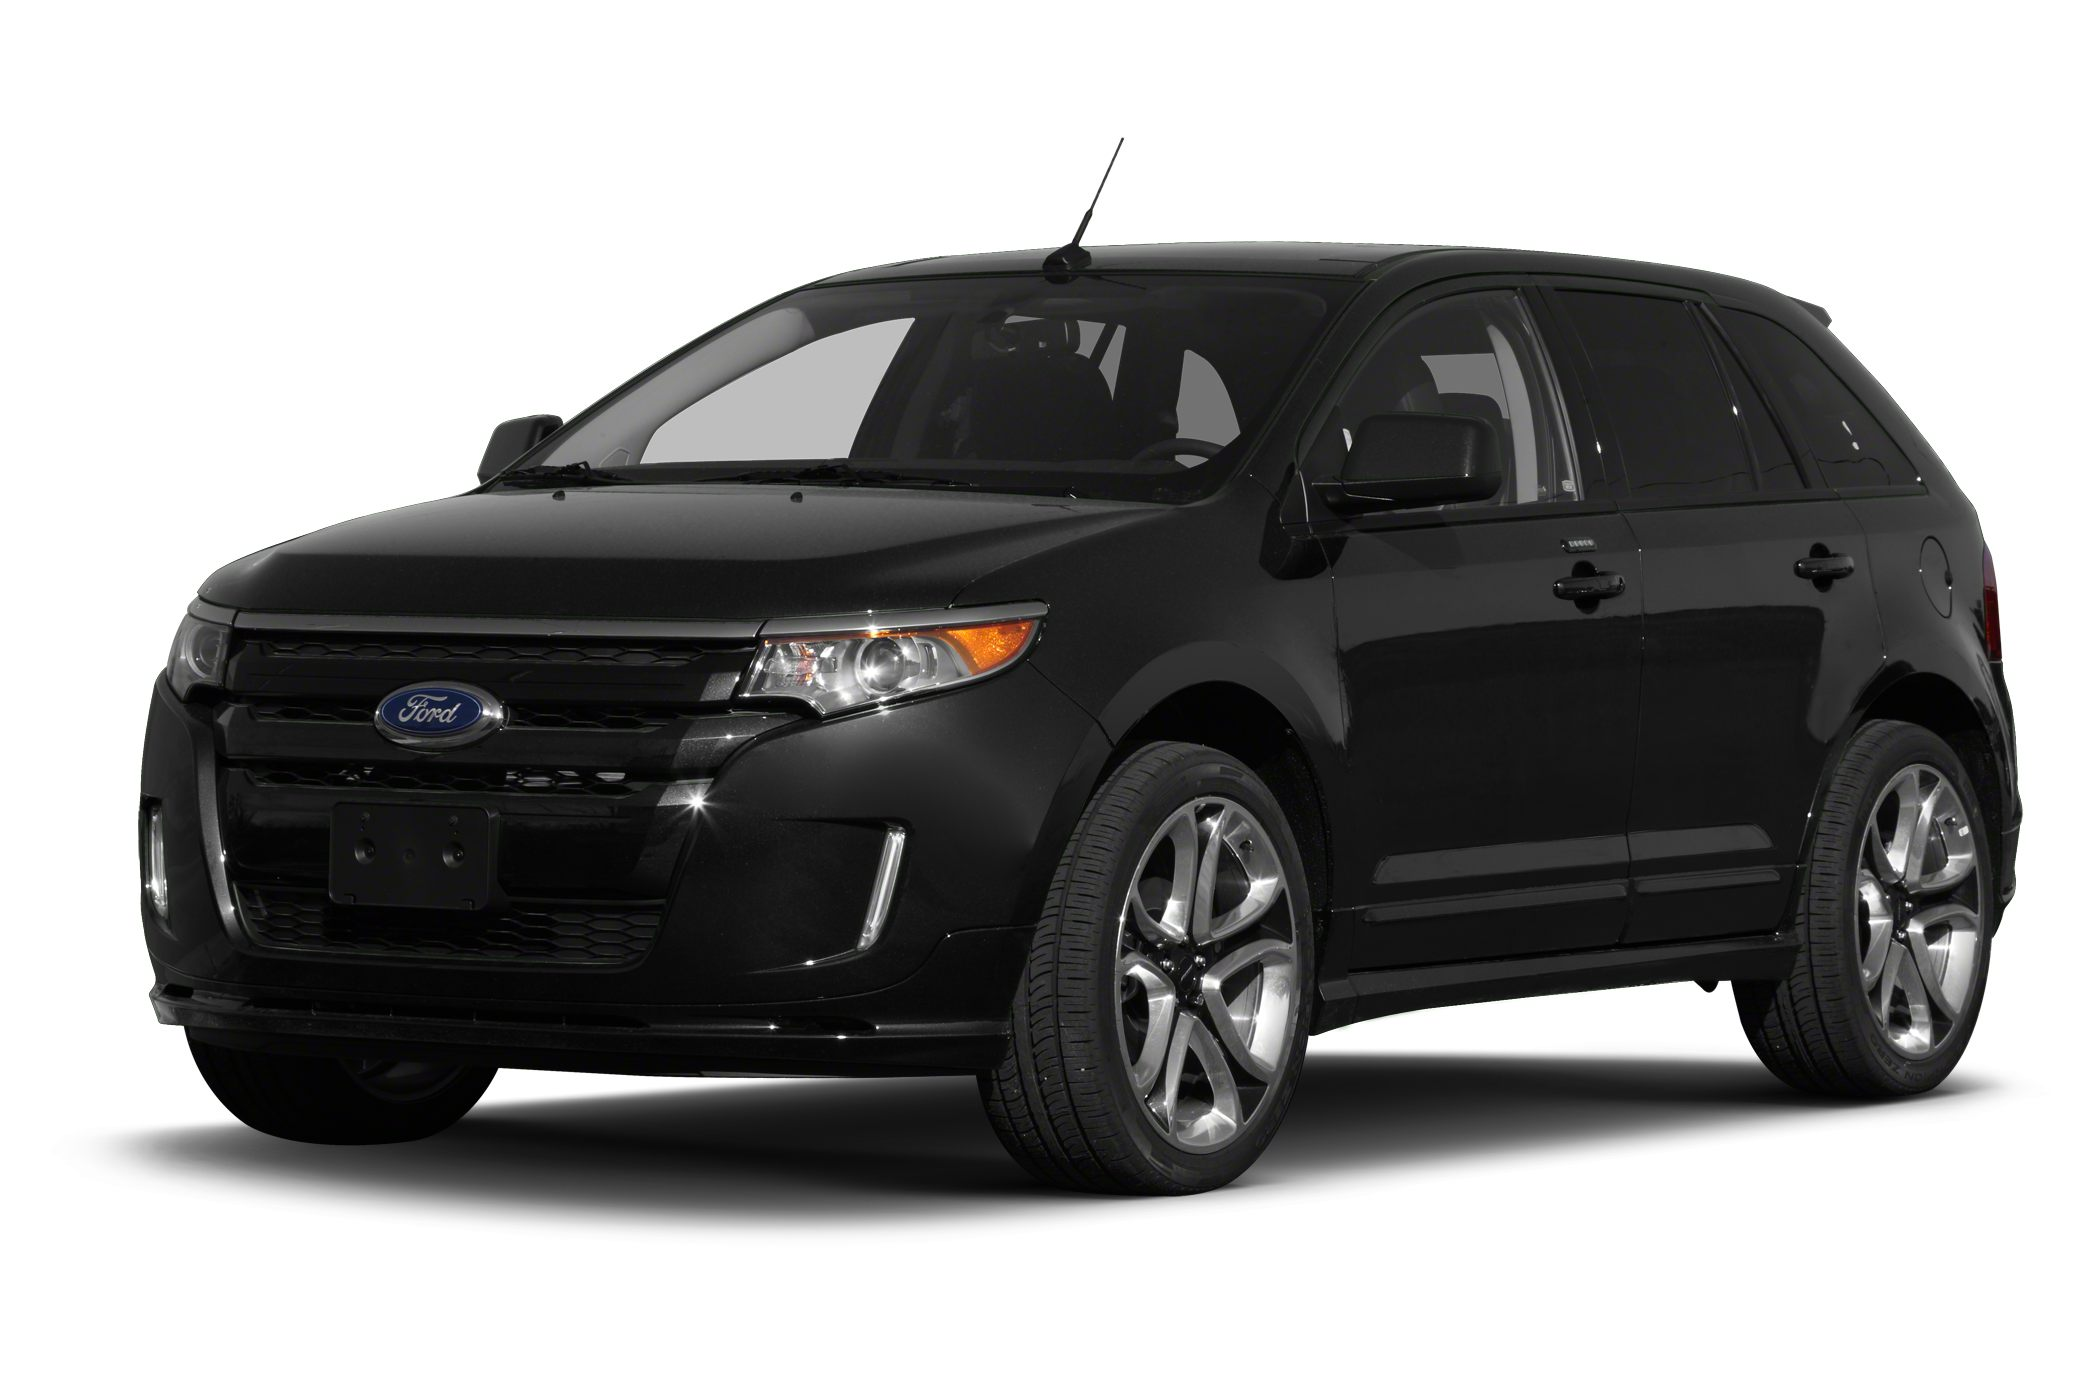 2013 Ford Edge Sport SUV for sale in Cumberland for $31,995 with 33,266 miles.